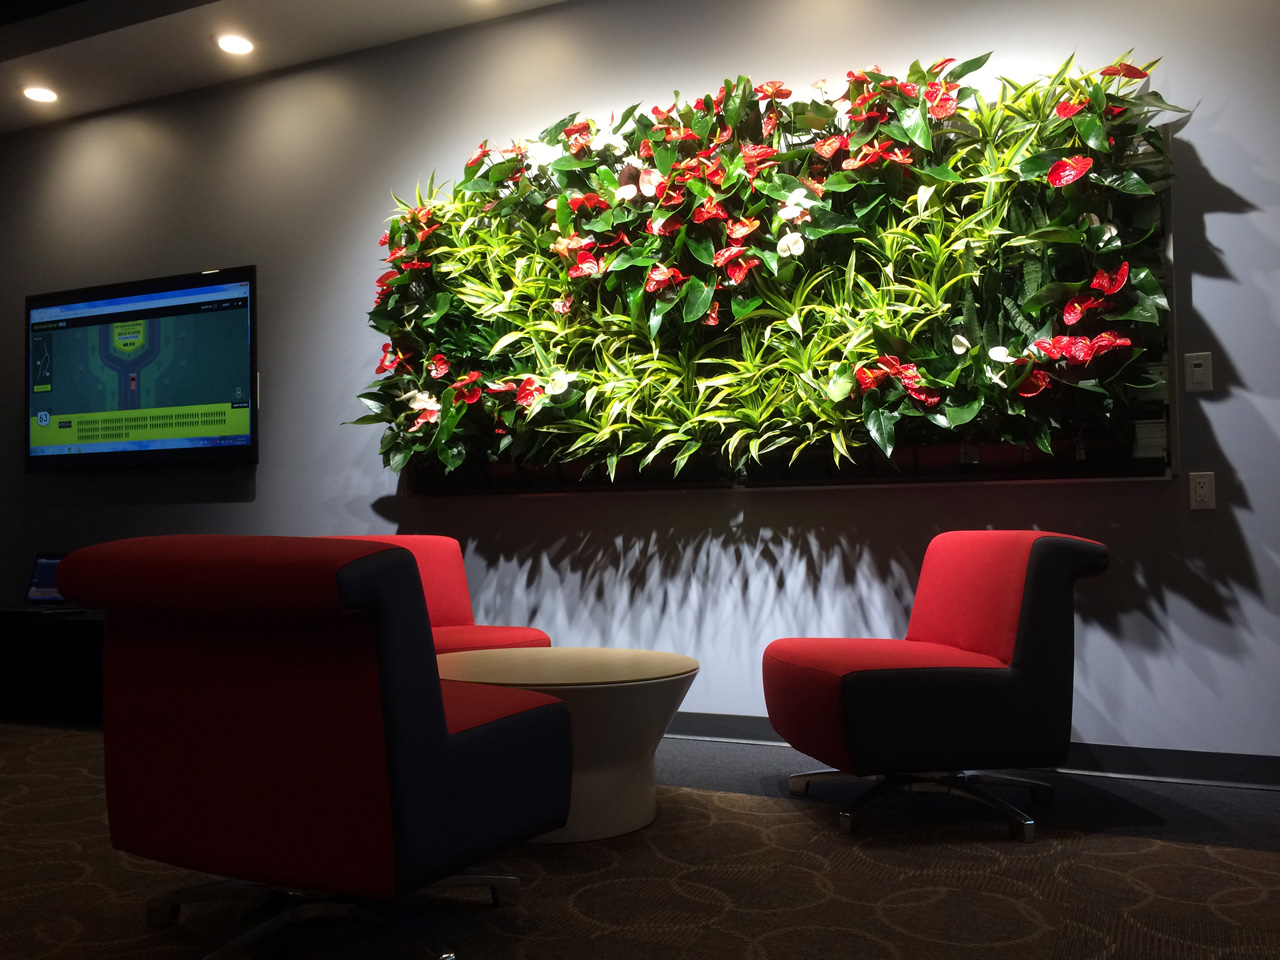 ACSA green wall with flowering plants